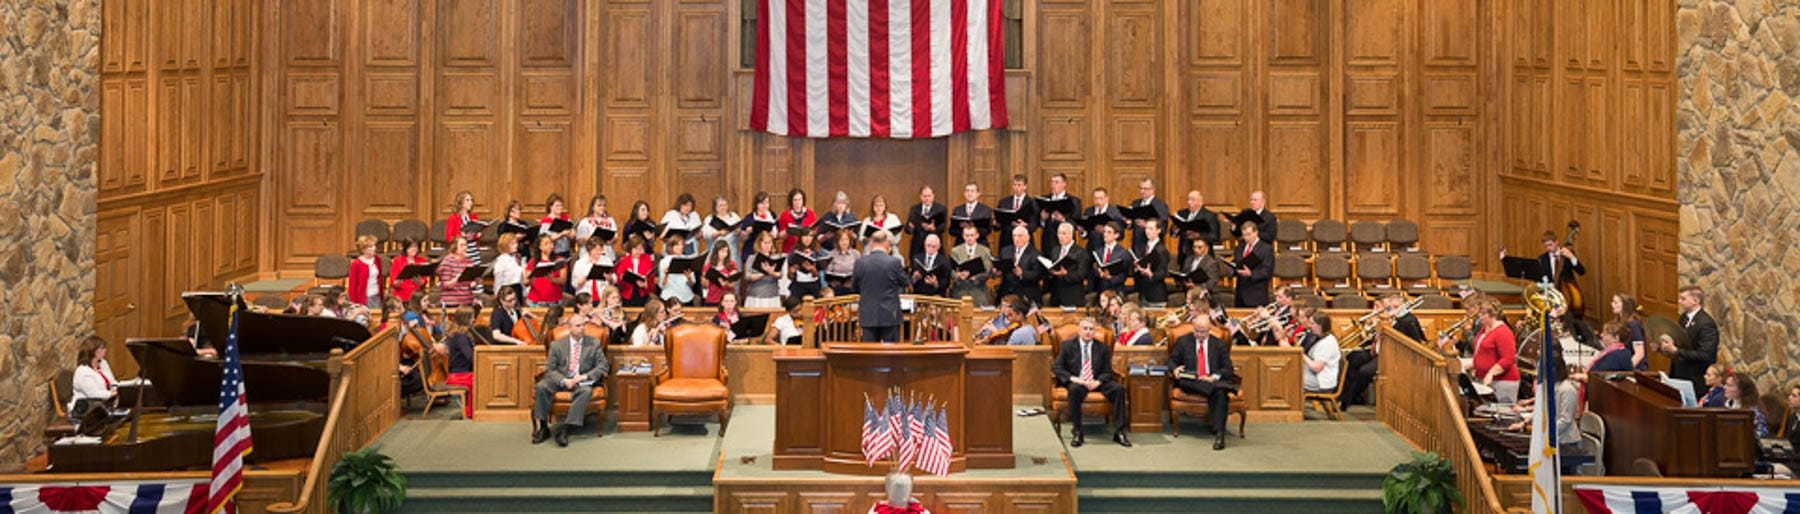 God and Country Sunday 2016 (9 of 35)